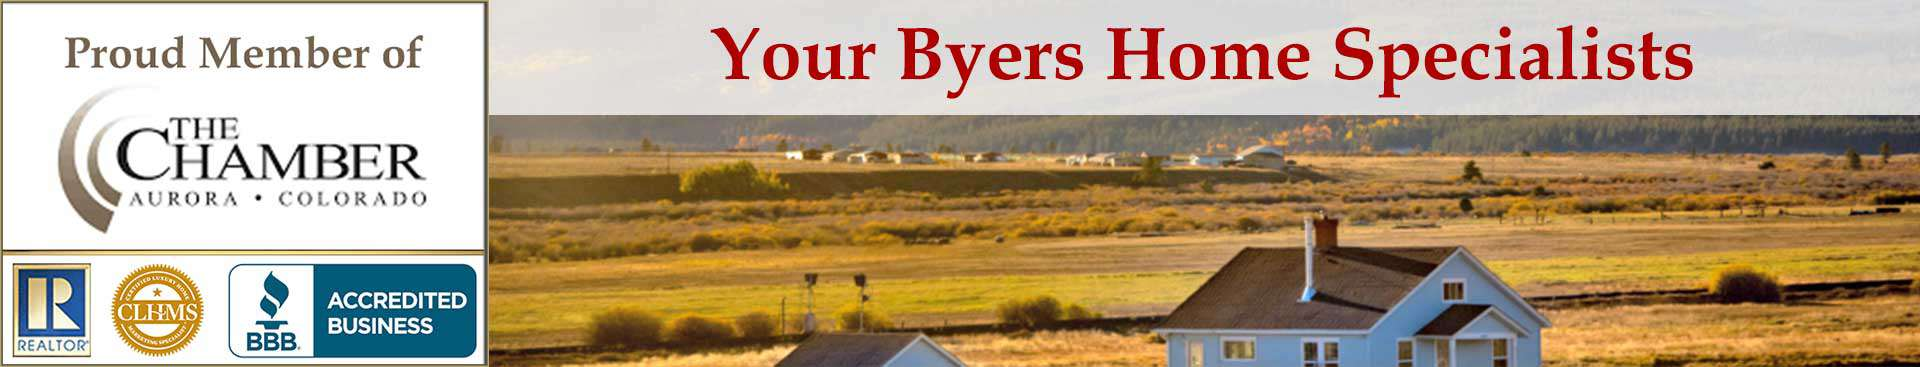 Byers CO Organizational Banner